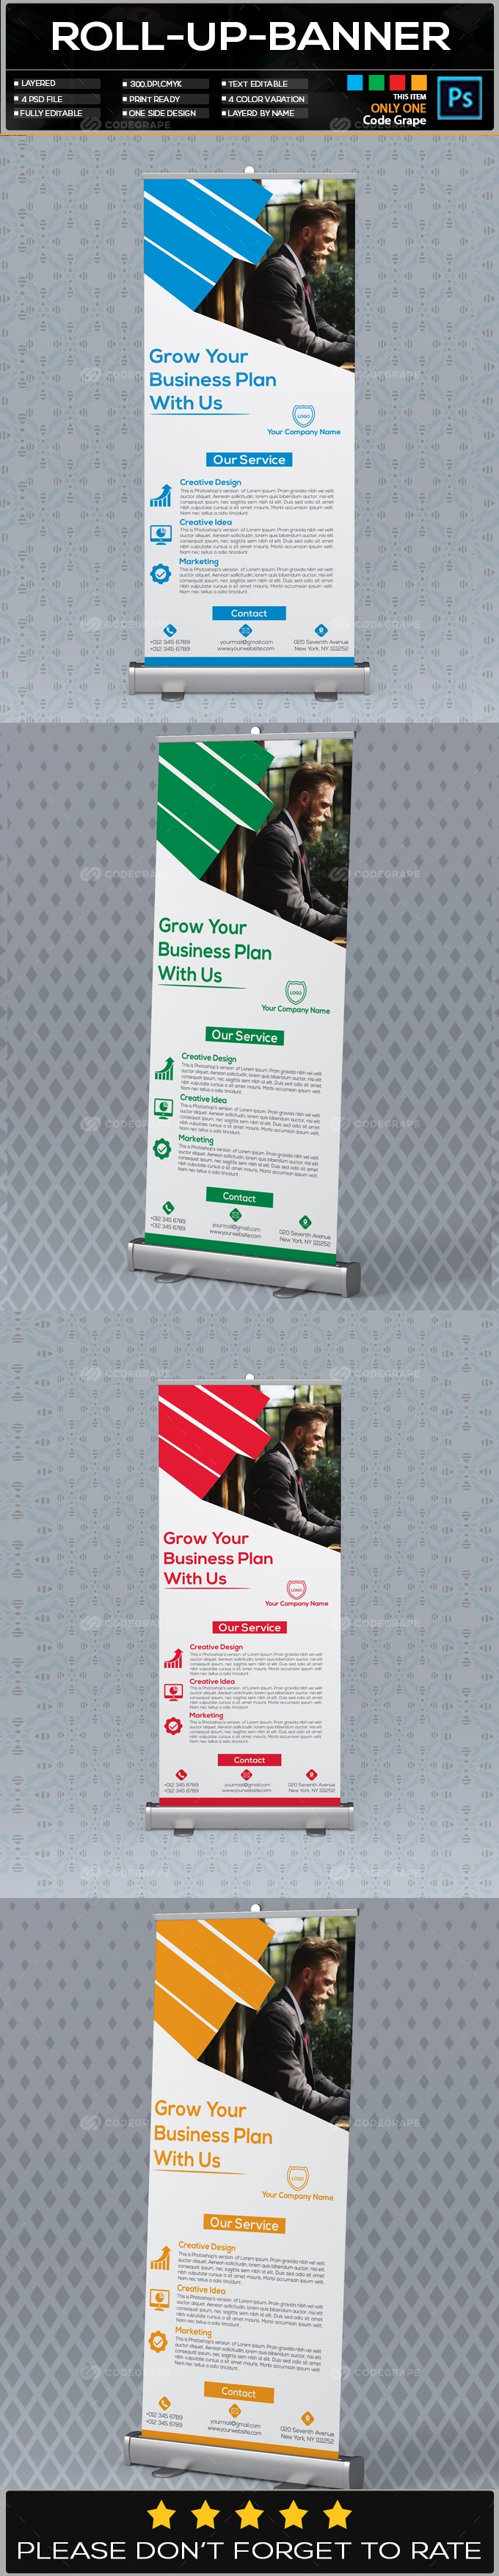 Roll Up Banner Vol - 06